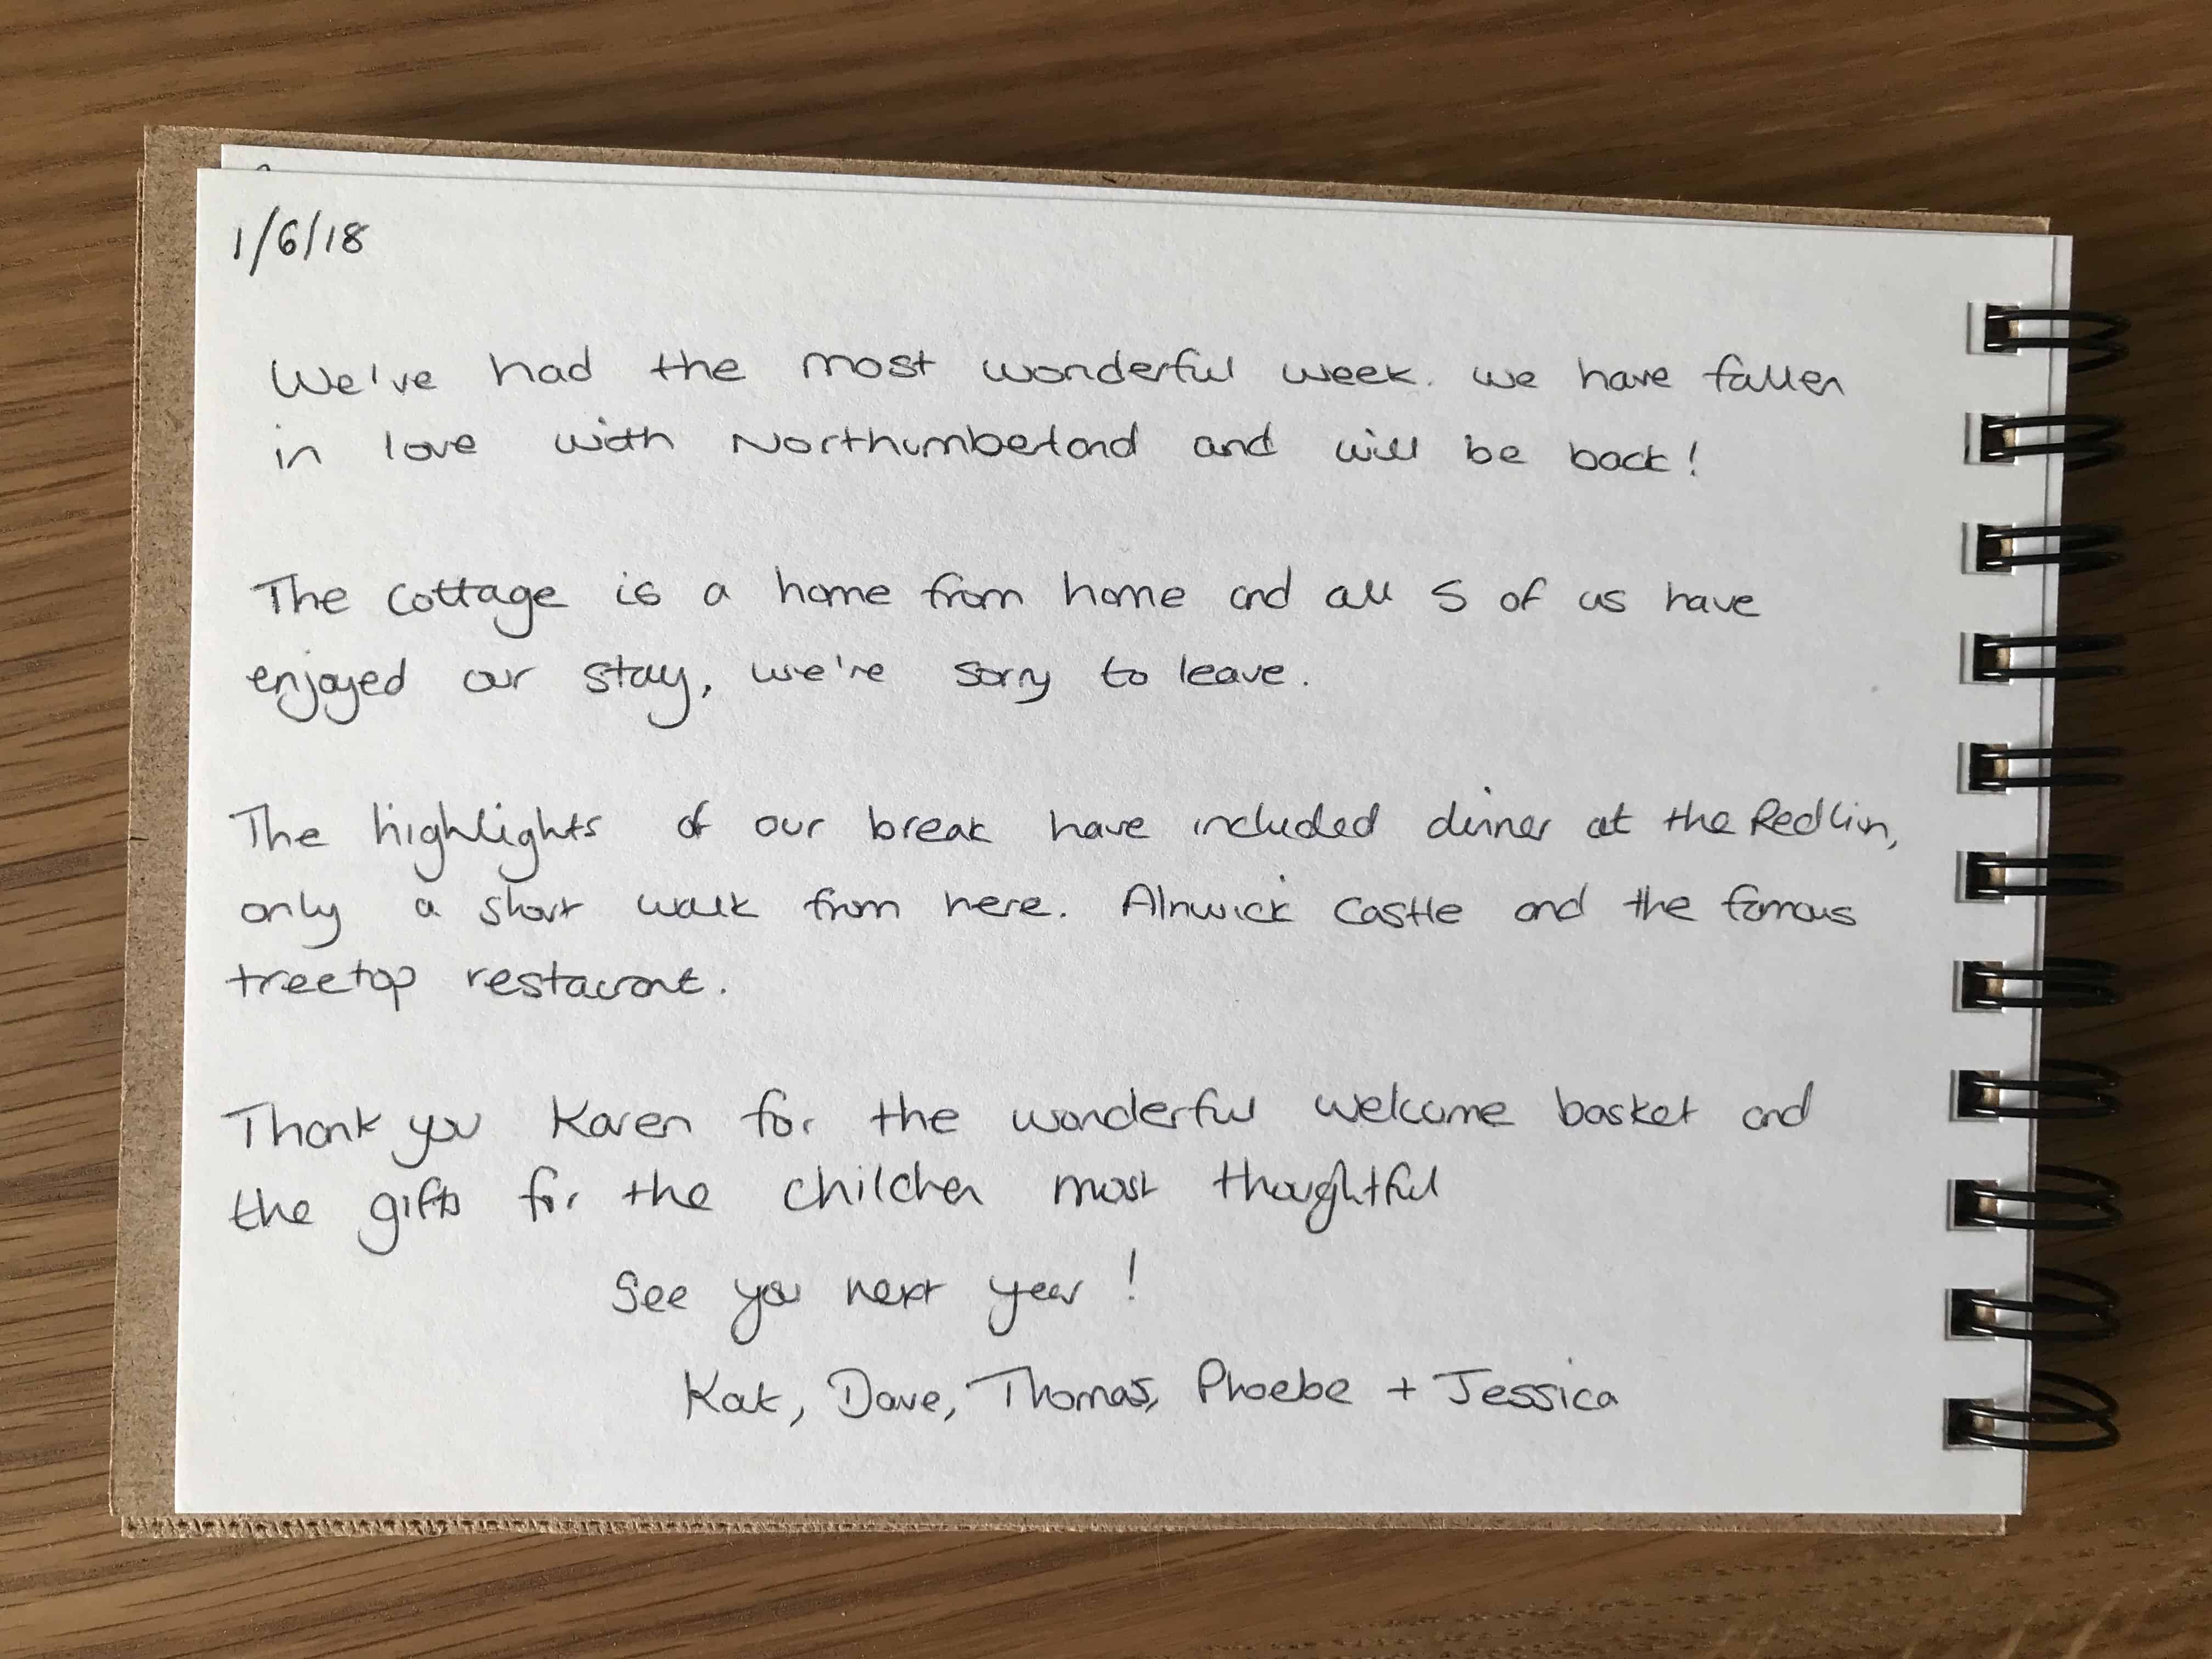 customer feedback - Karen's Kottages - Stanegate Cottage - Northumberland - dog friendly - family friendly